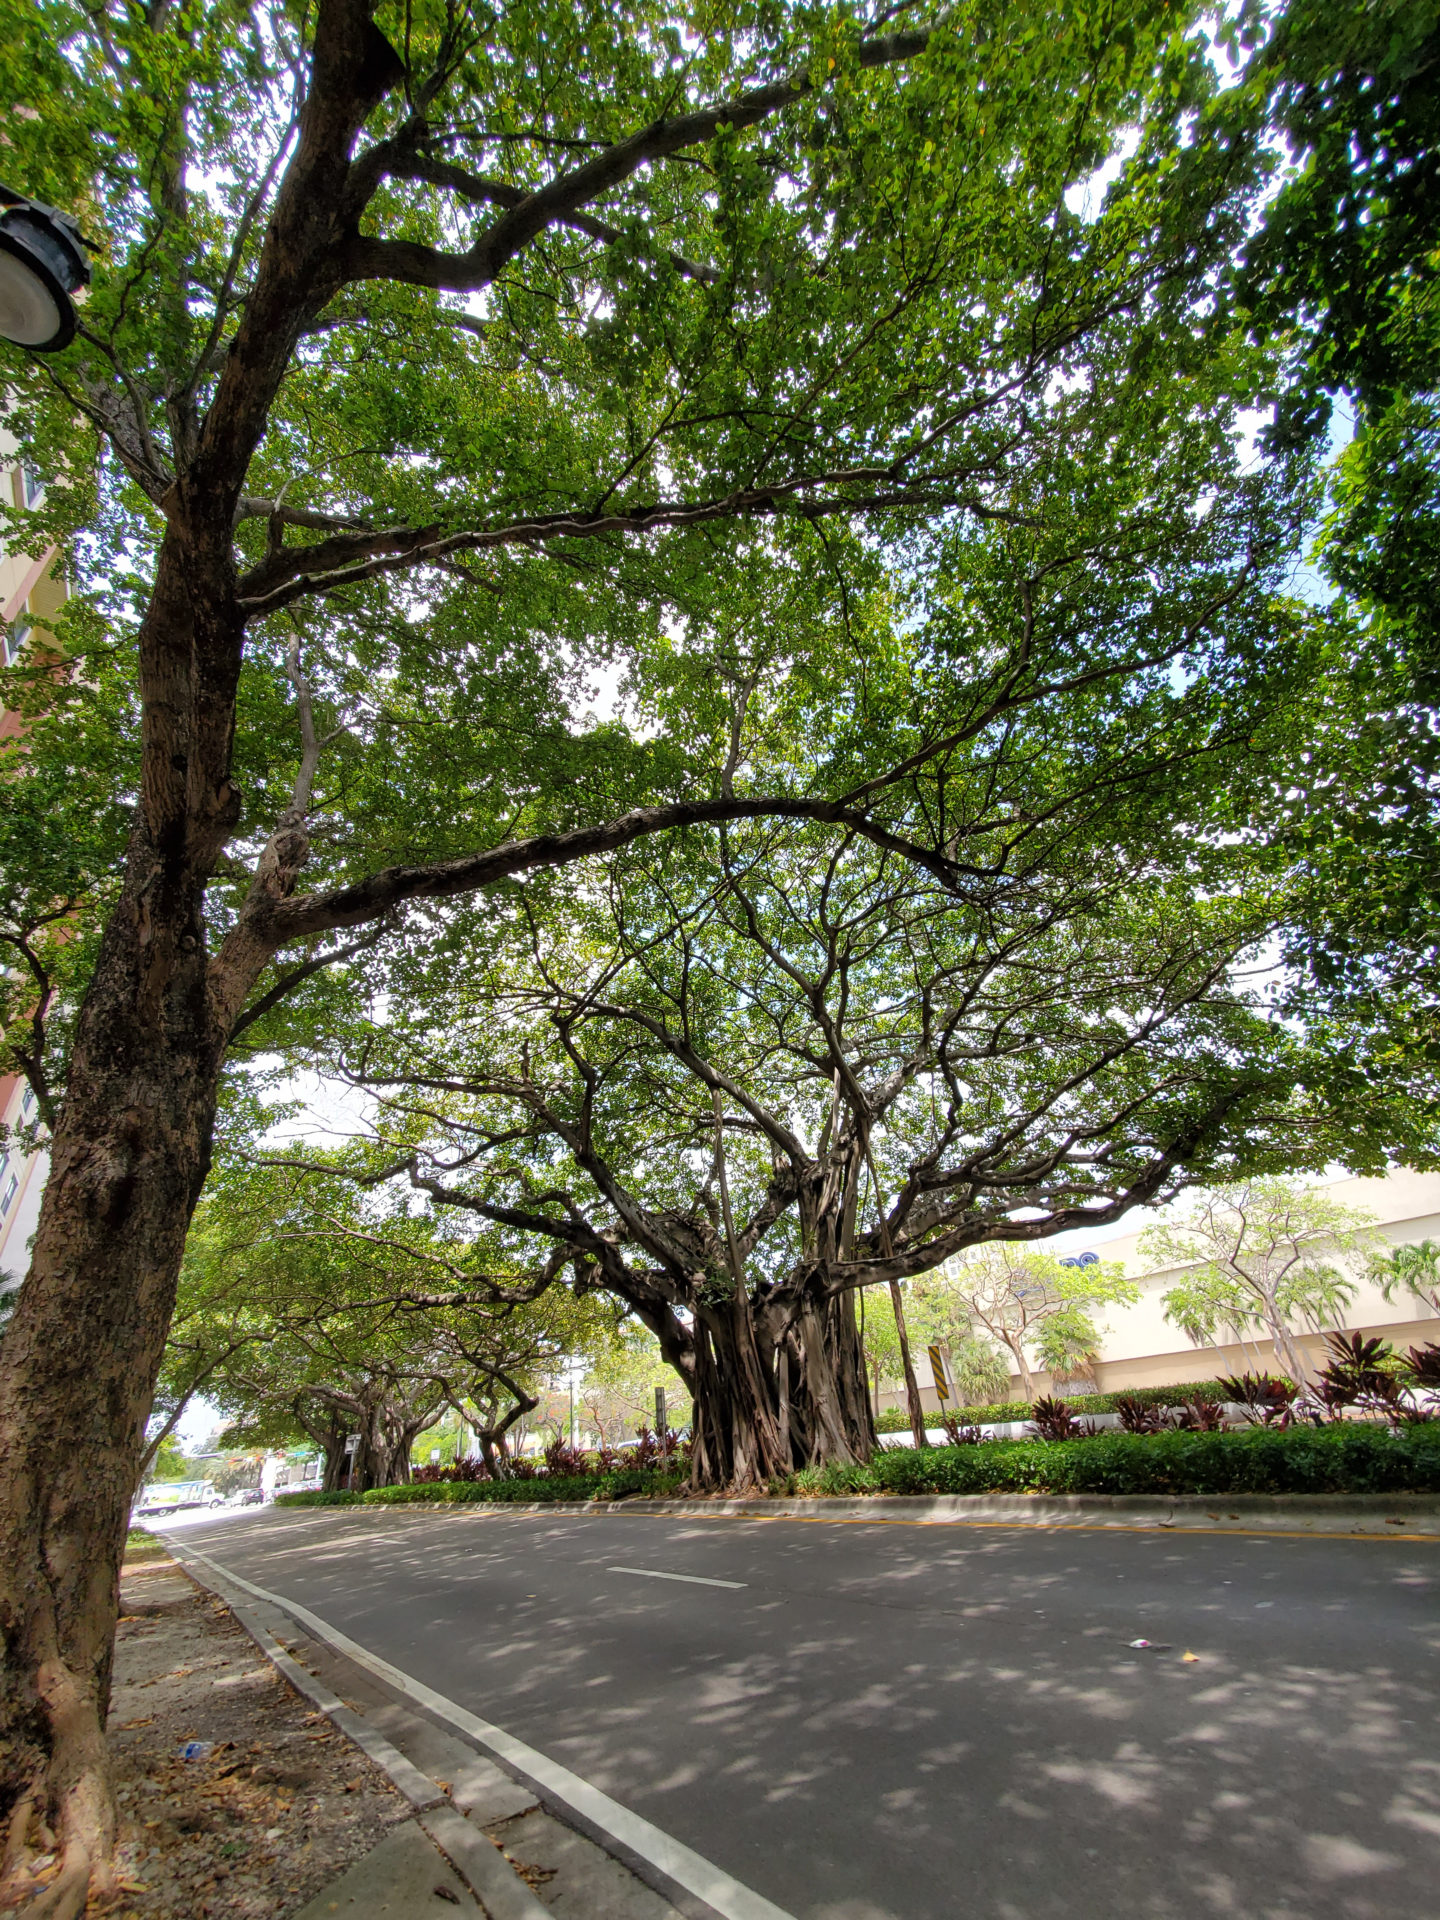 Giant Tress in Coral Gables.